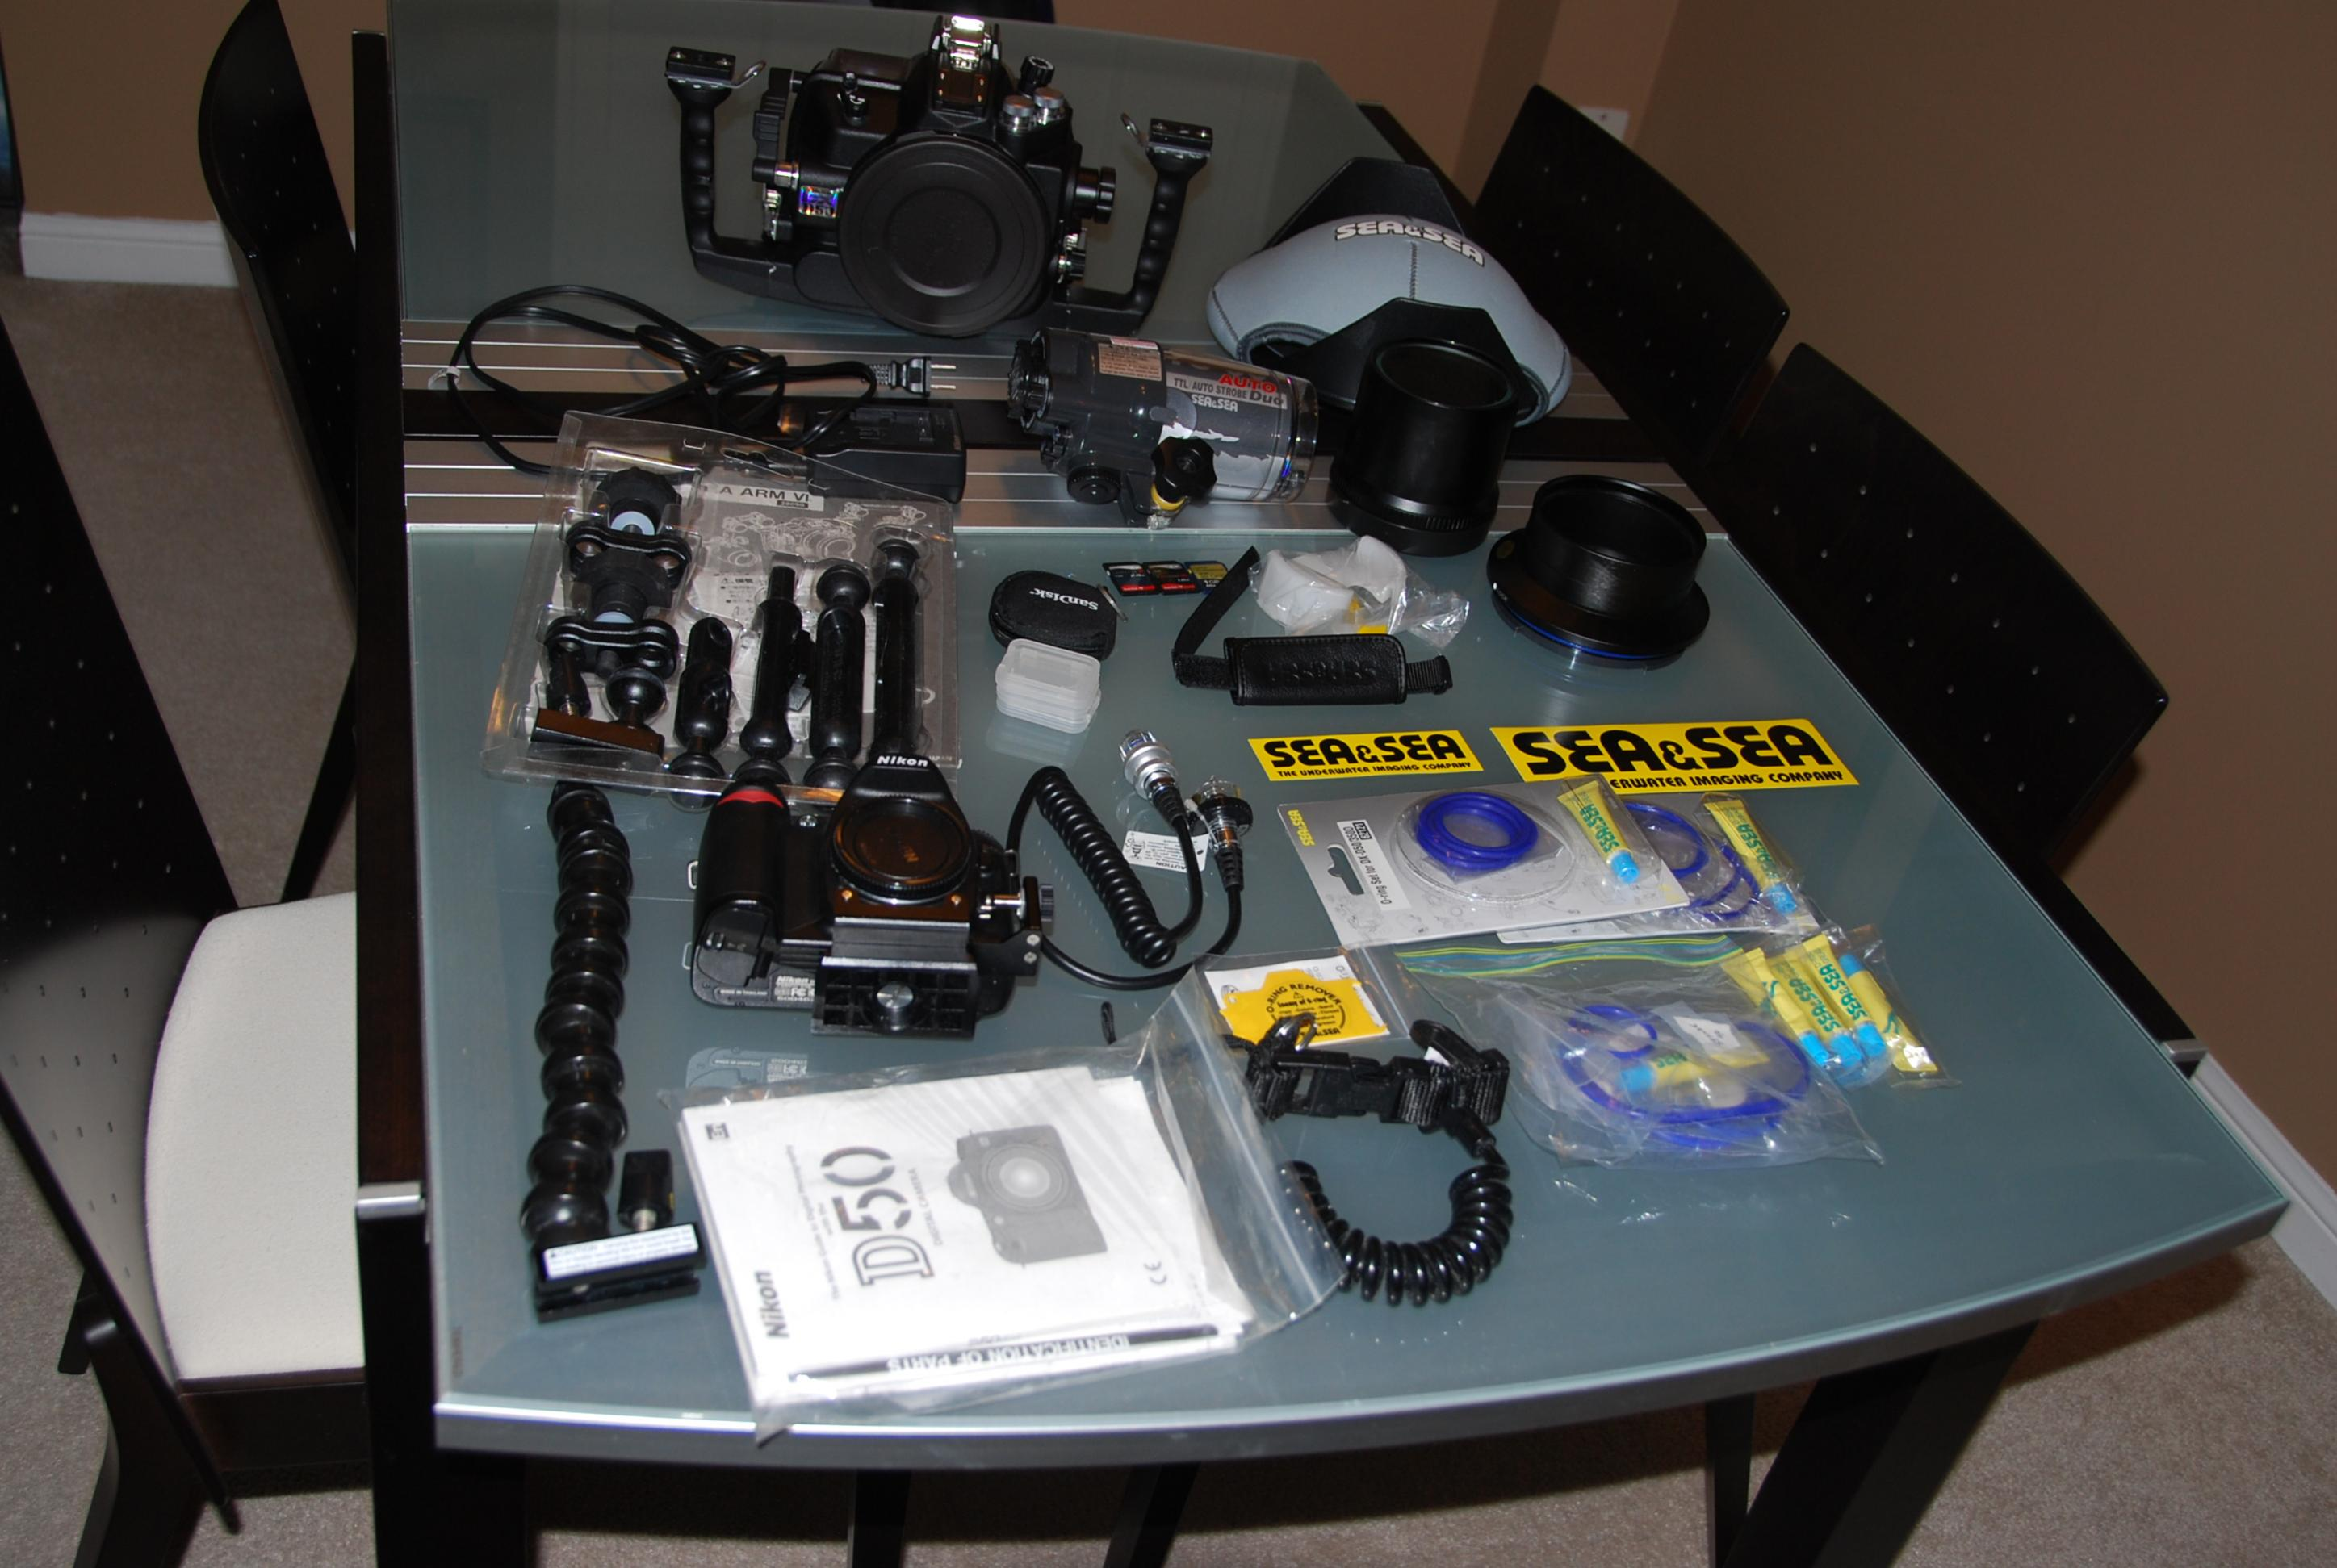 Sea&Sea DX-D50 Underwater housing complete system, ports